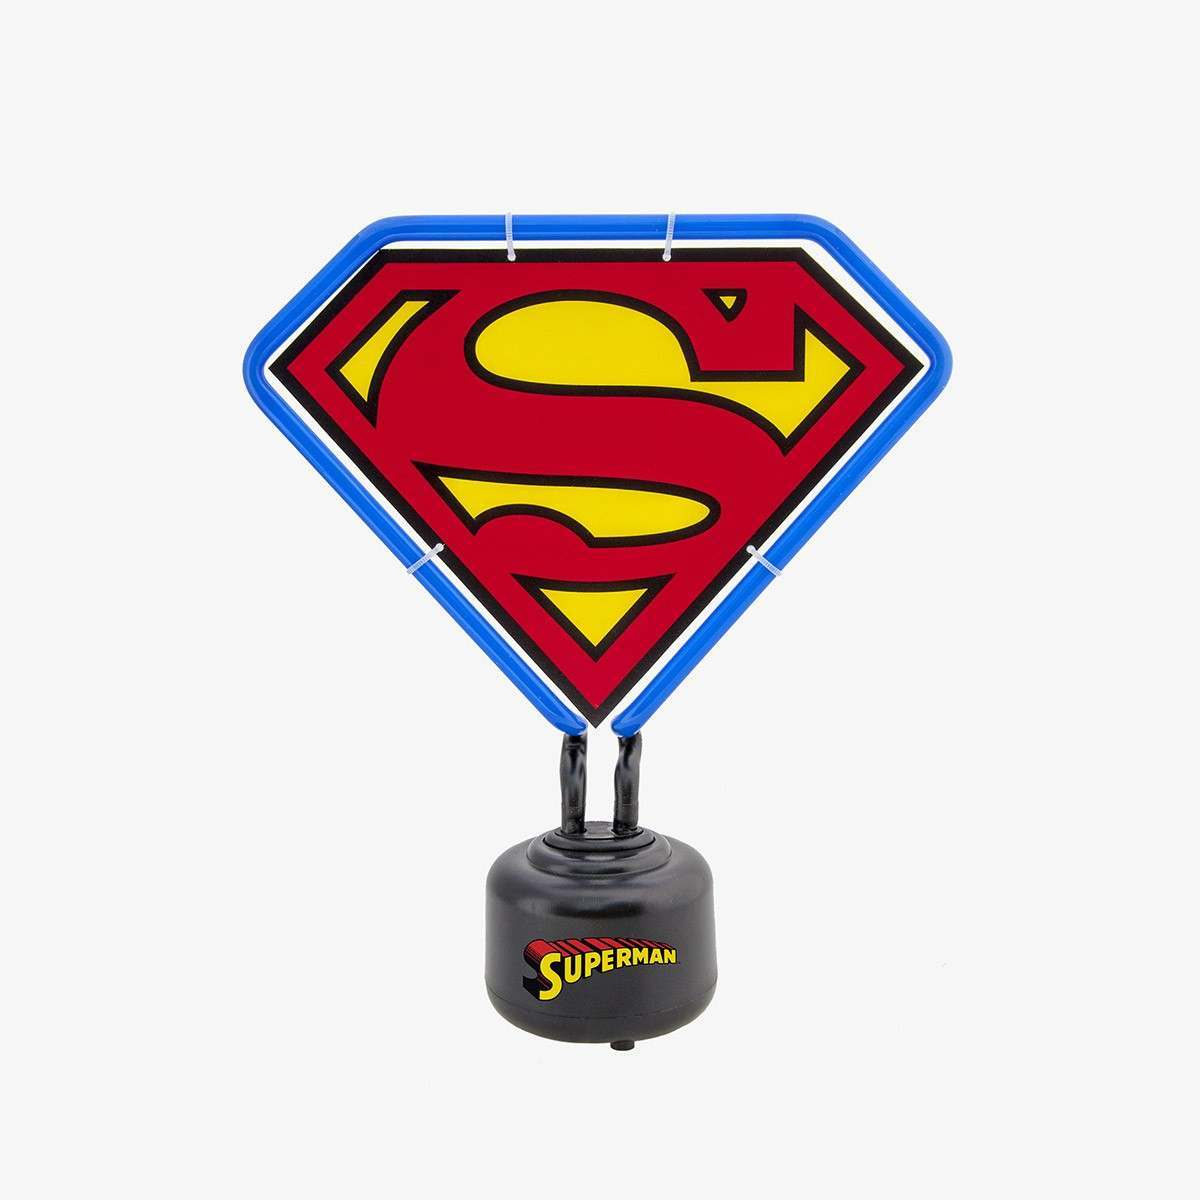 Small Superman Neon Light with Blue Classic Outline